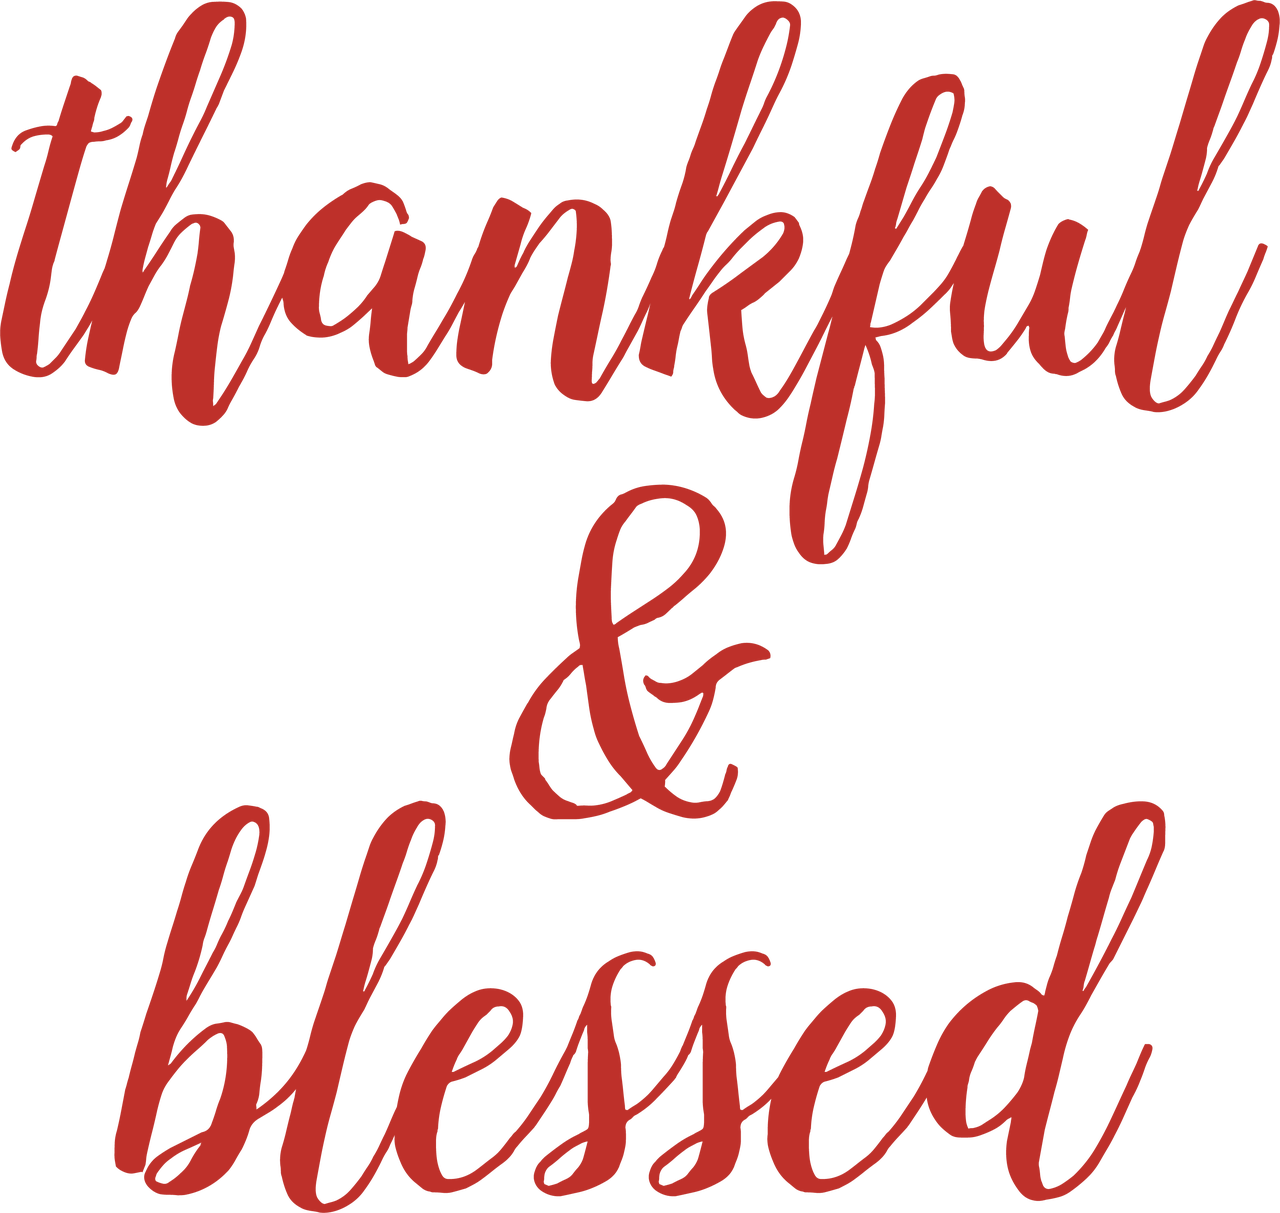 Thankful & Blessed SVG Cut File